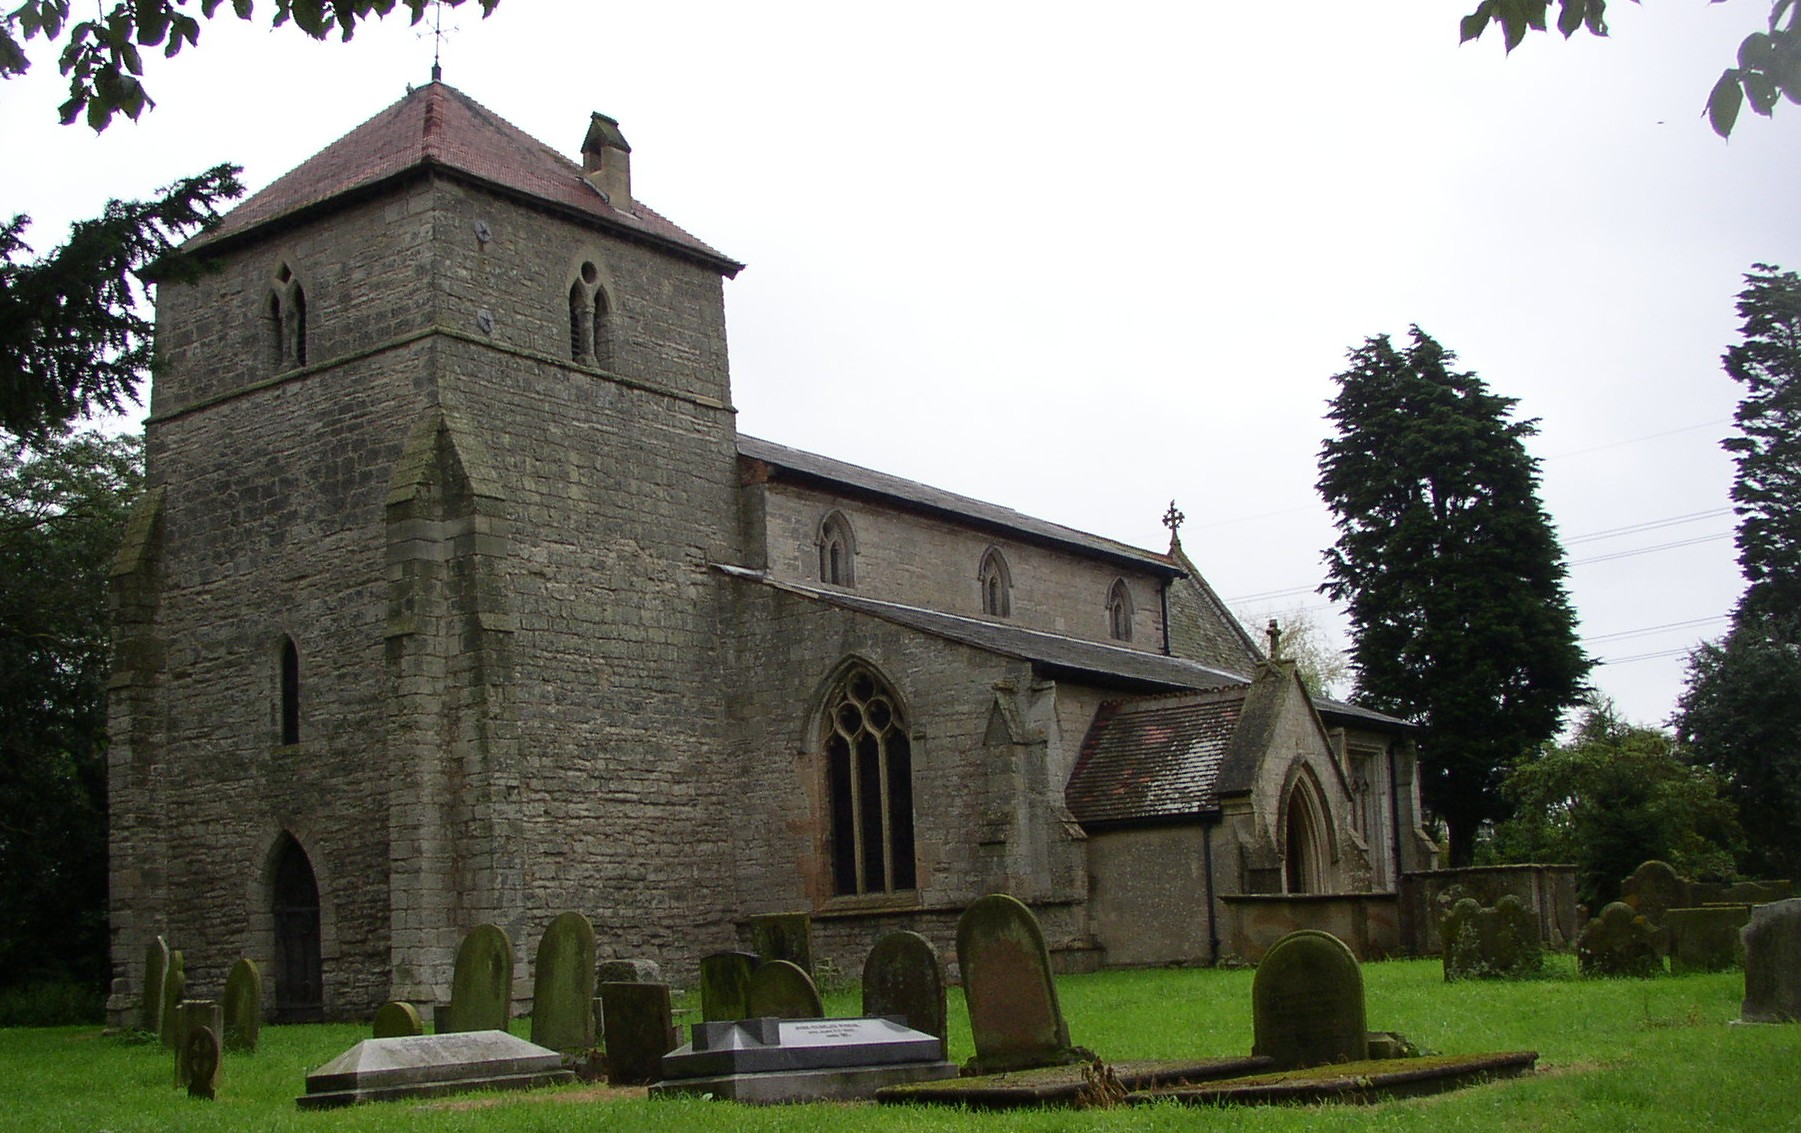 St. Gregory's Church